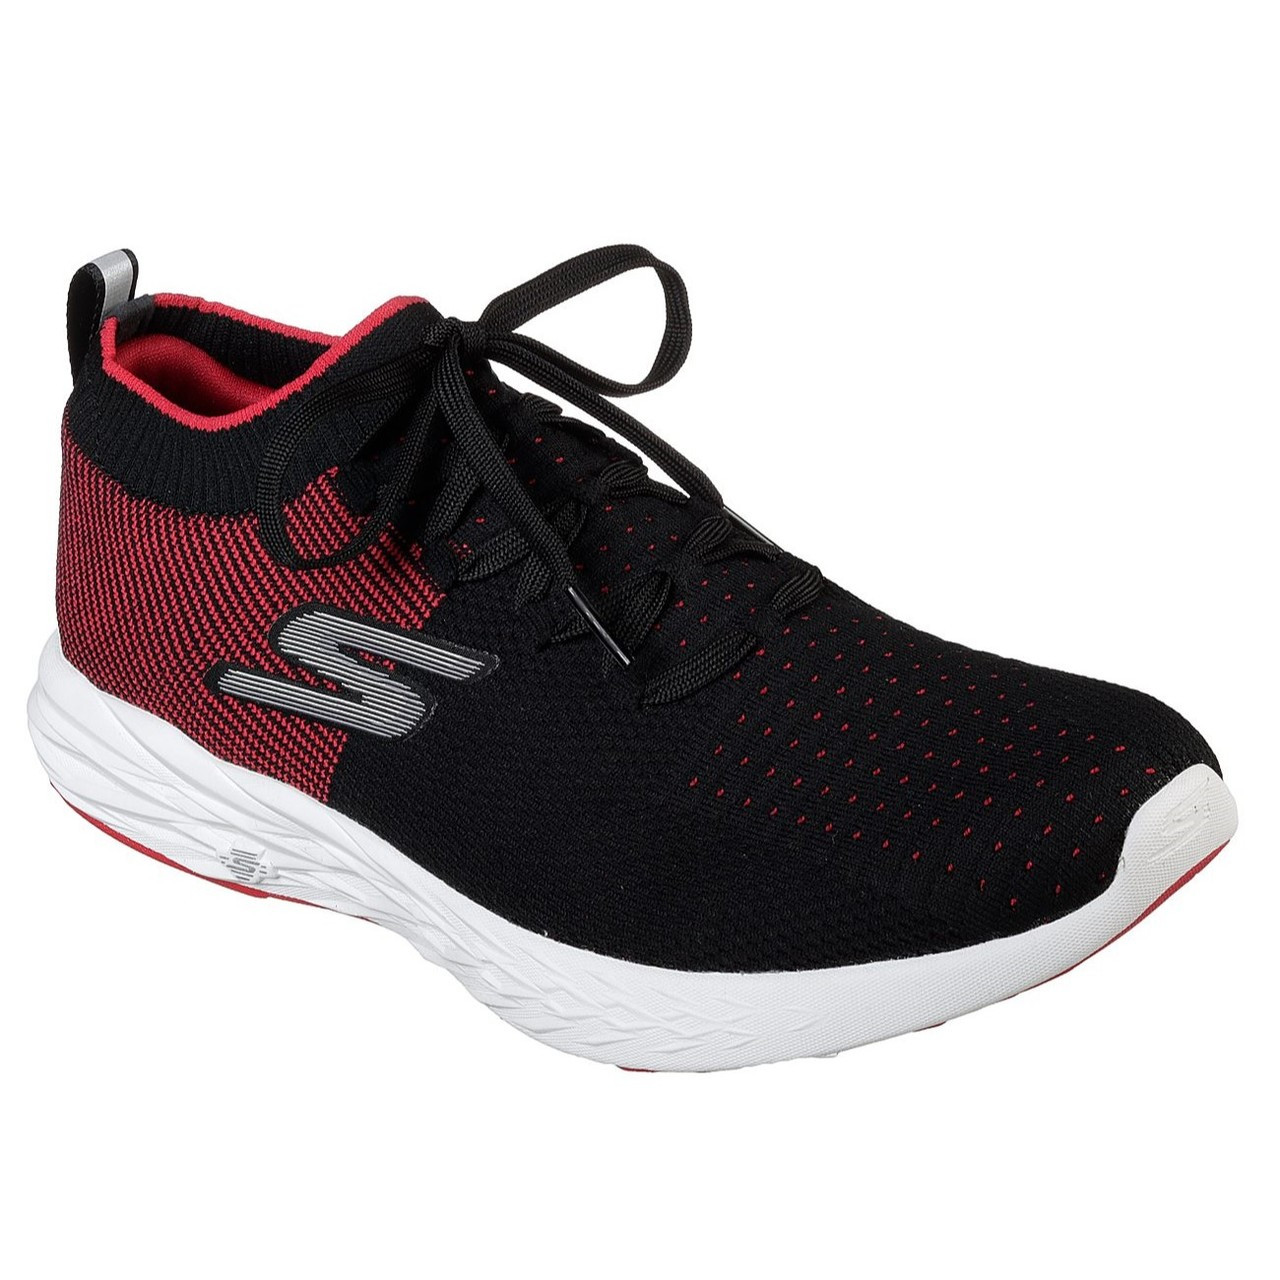 d80db07a2cc Skechers Men s Go Run 6 Shoe